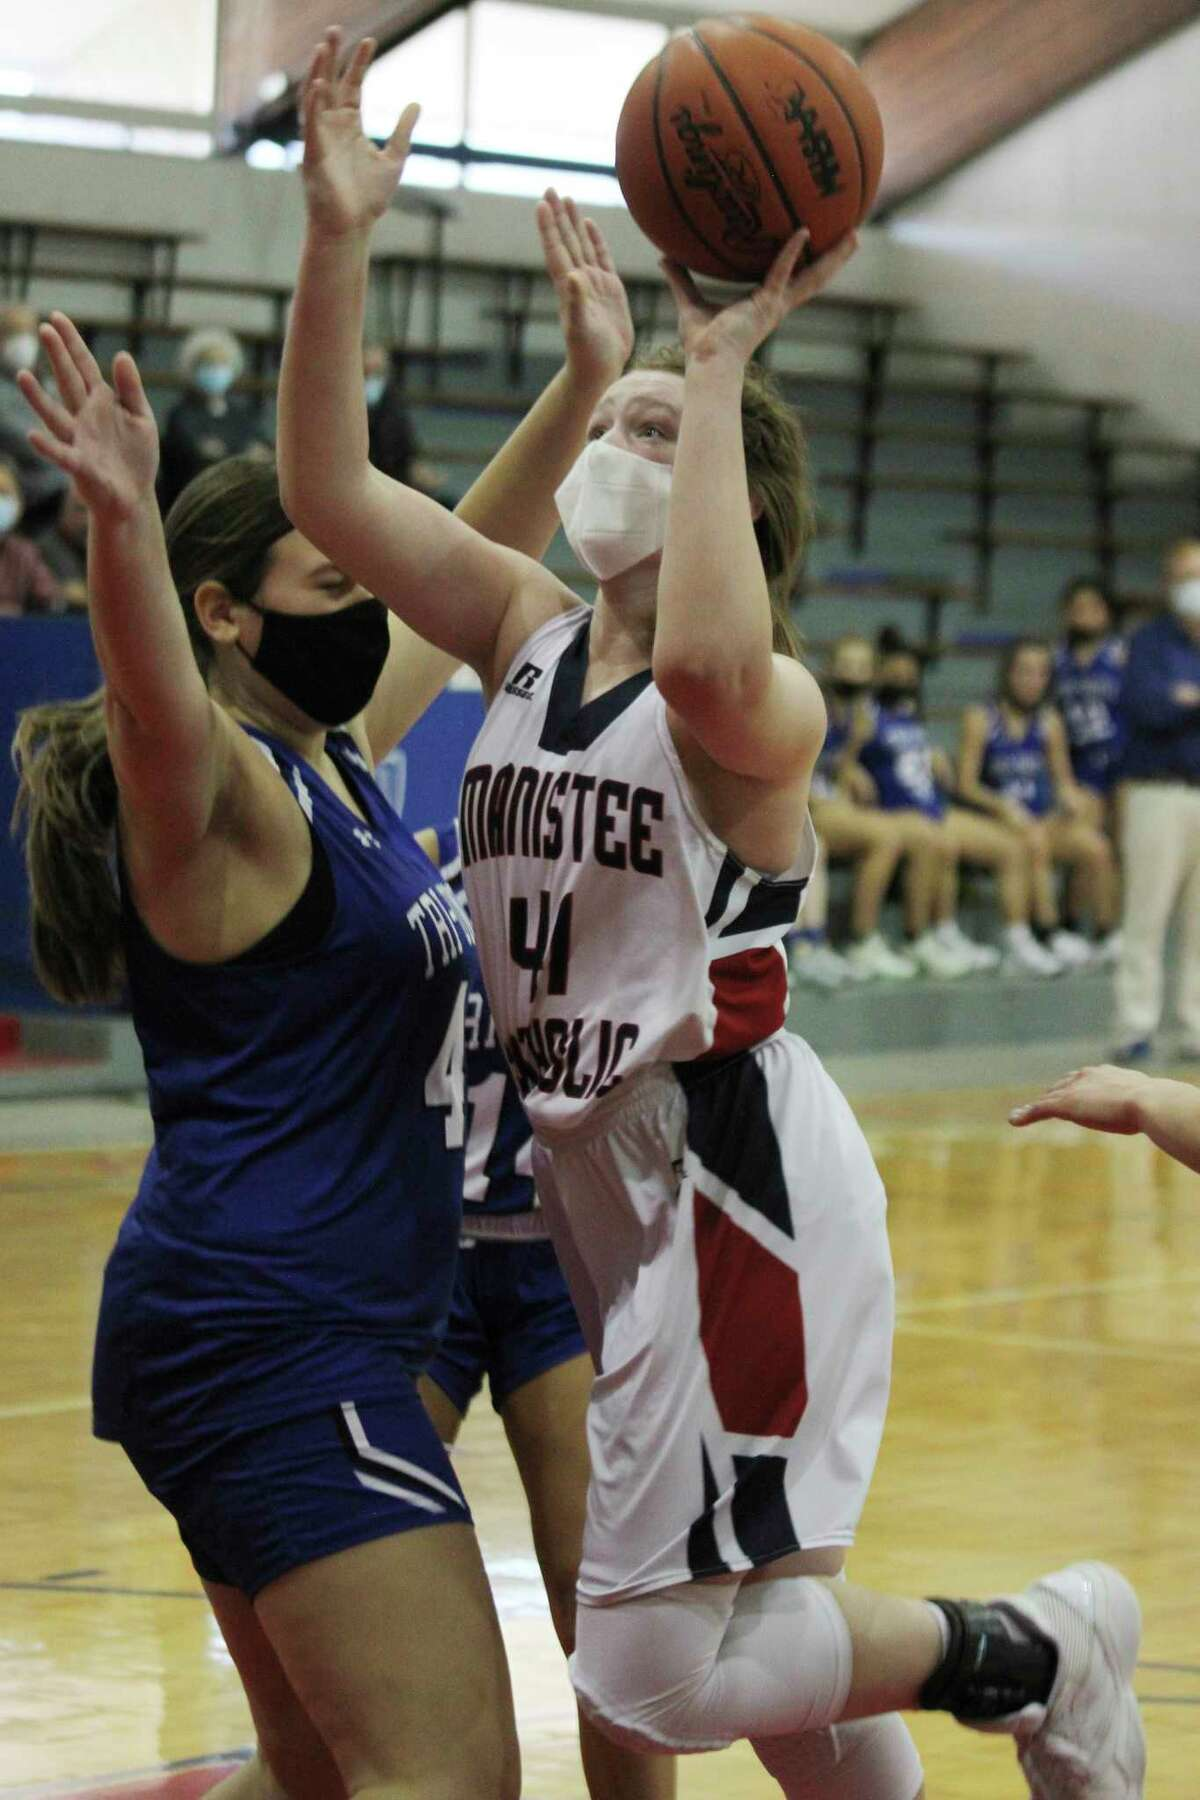 Manistee Catholic Central's Kaylyn Johnson was named first team all-conference in the West Michigan D League this season. (News Advocate file photo)